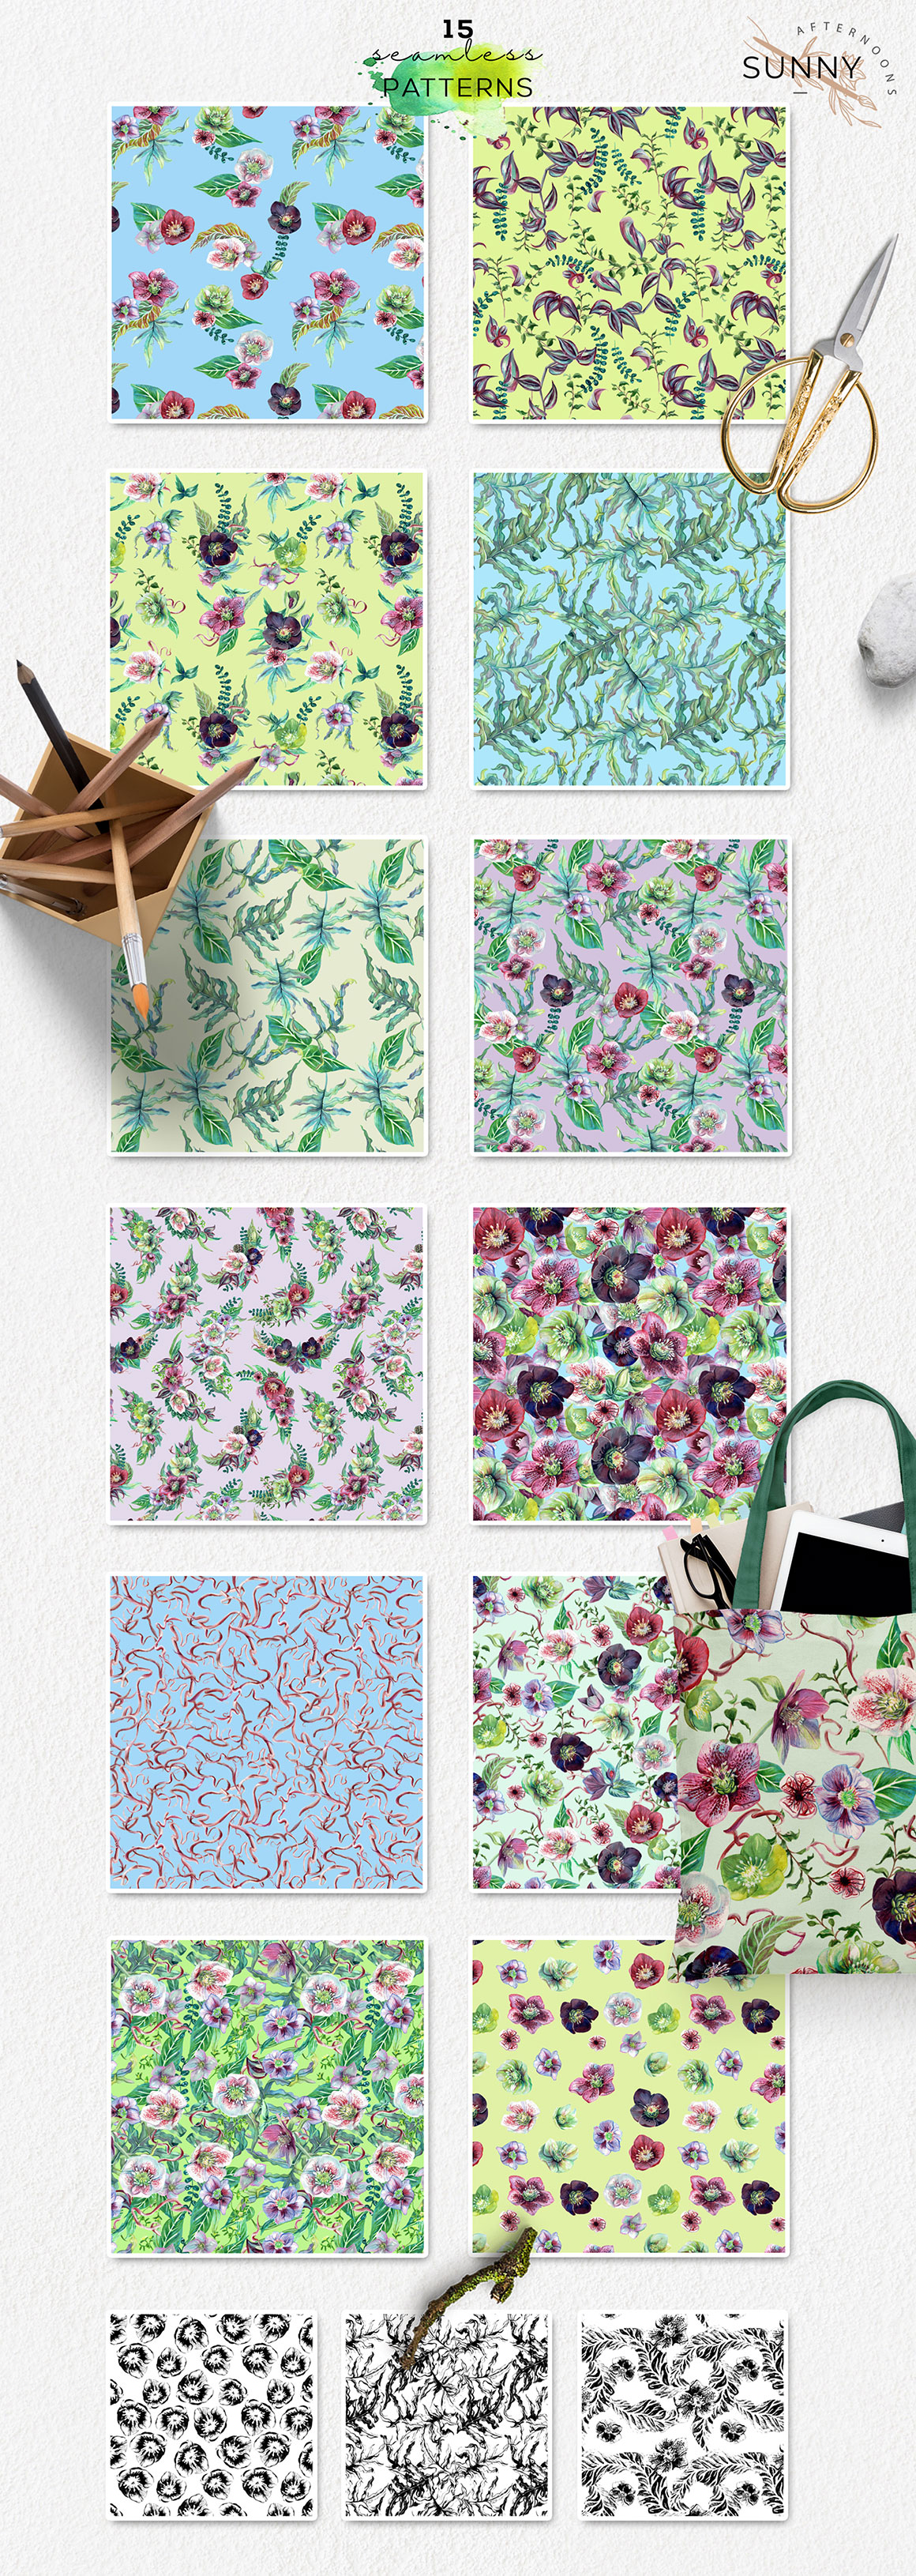 Botanica Floral & Greenery Watercolor Collection